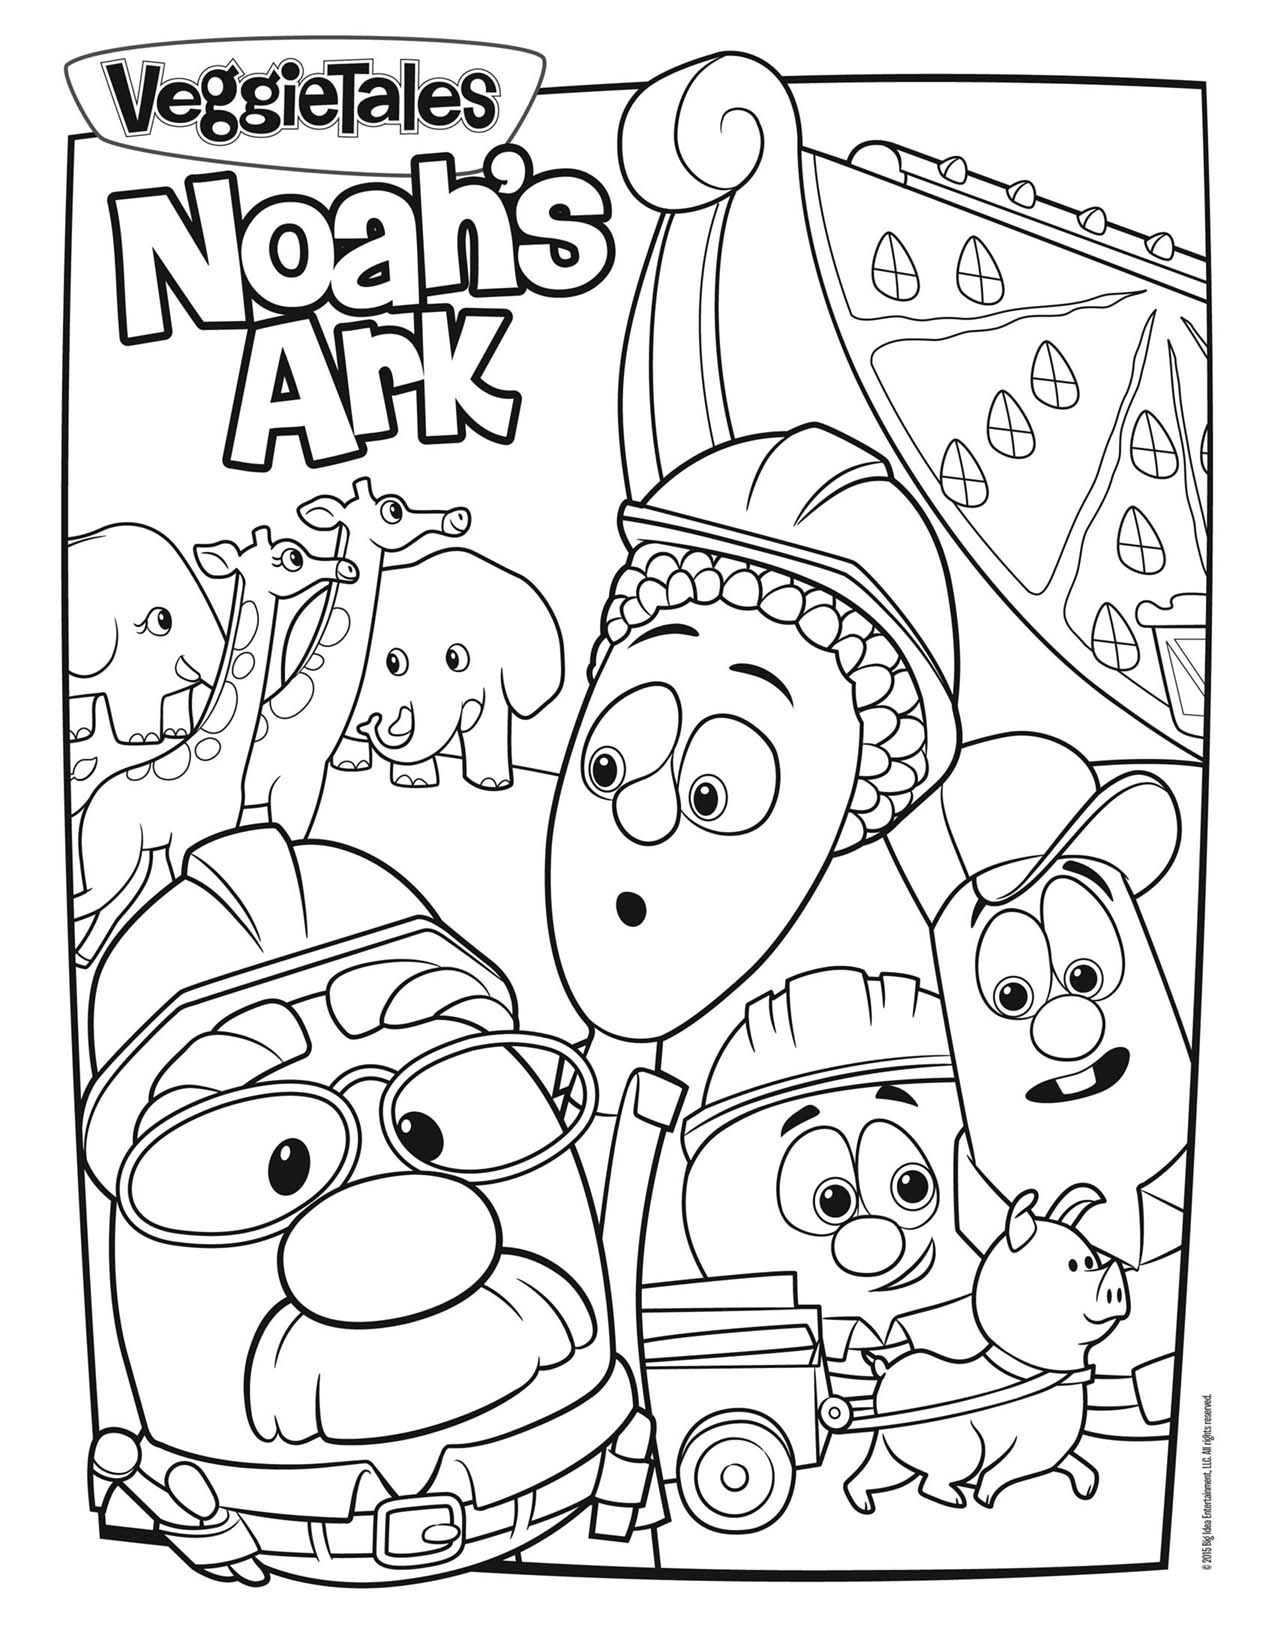 noah s ark coloring page noah s ark pinterest sunday school